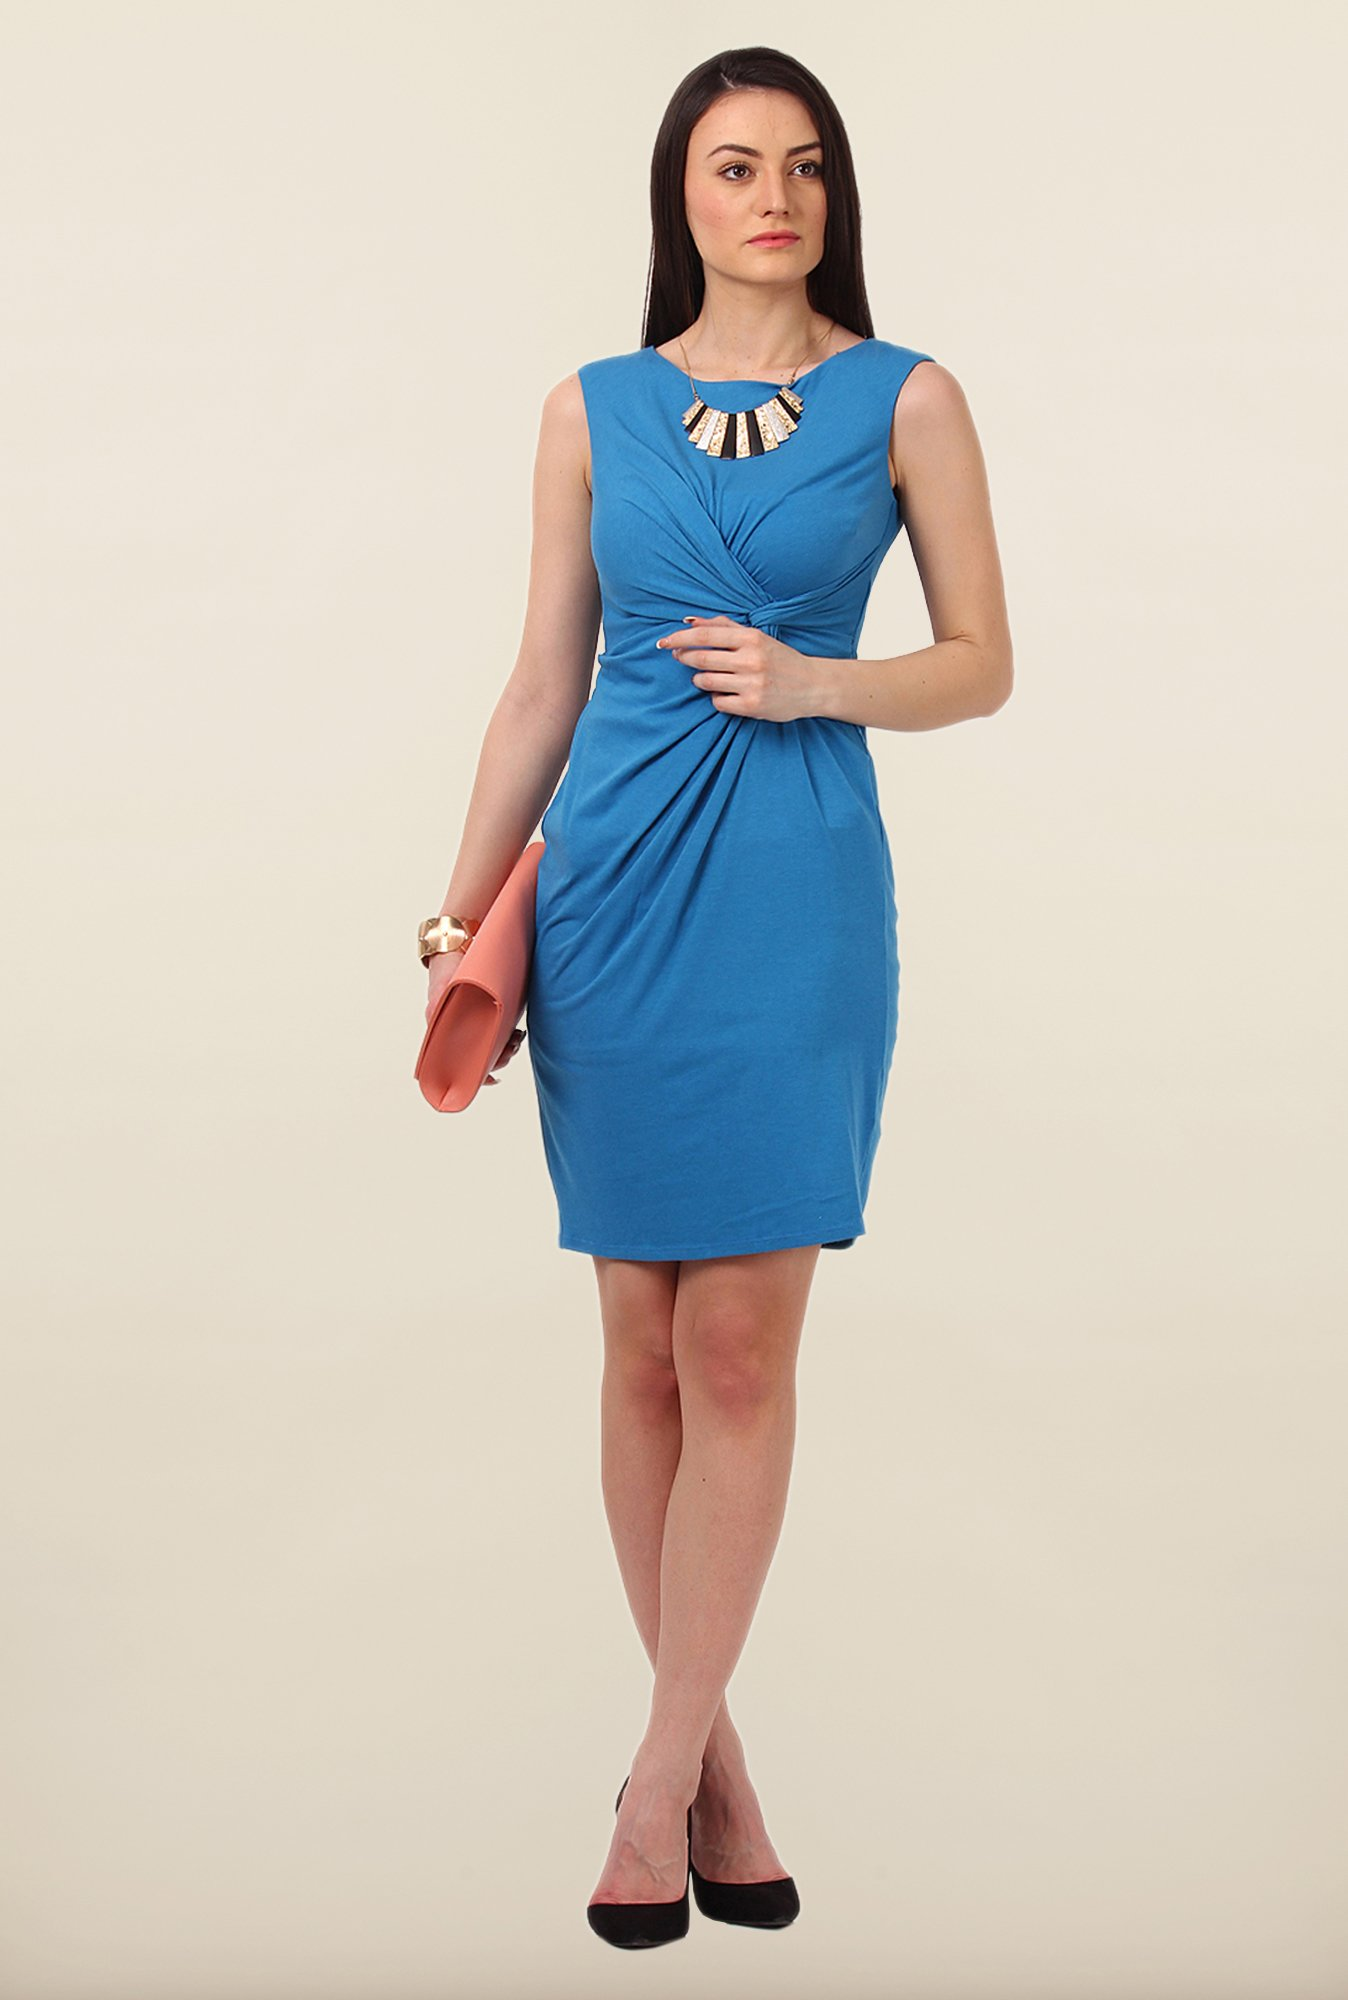 Avirate Blue Solid Sleeveless Jersey Dress